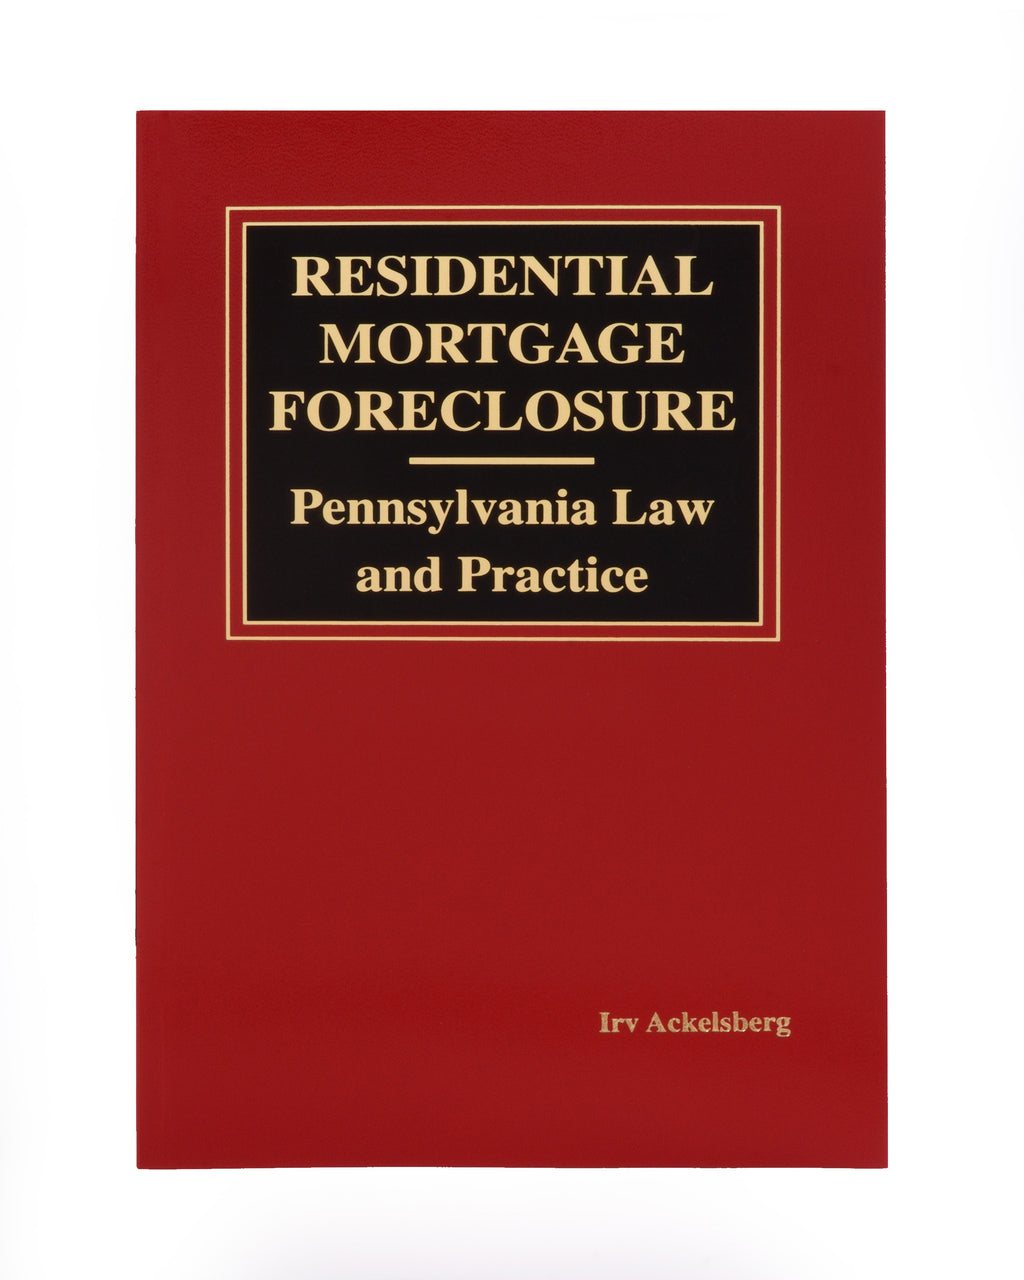 Residential Mortgage Foreclosure - Pennsylvania Law and Practice (includes book + digital download)